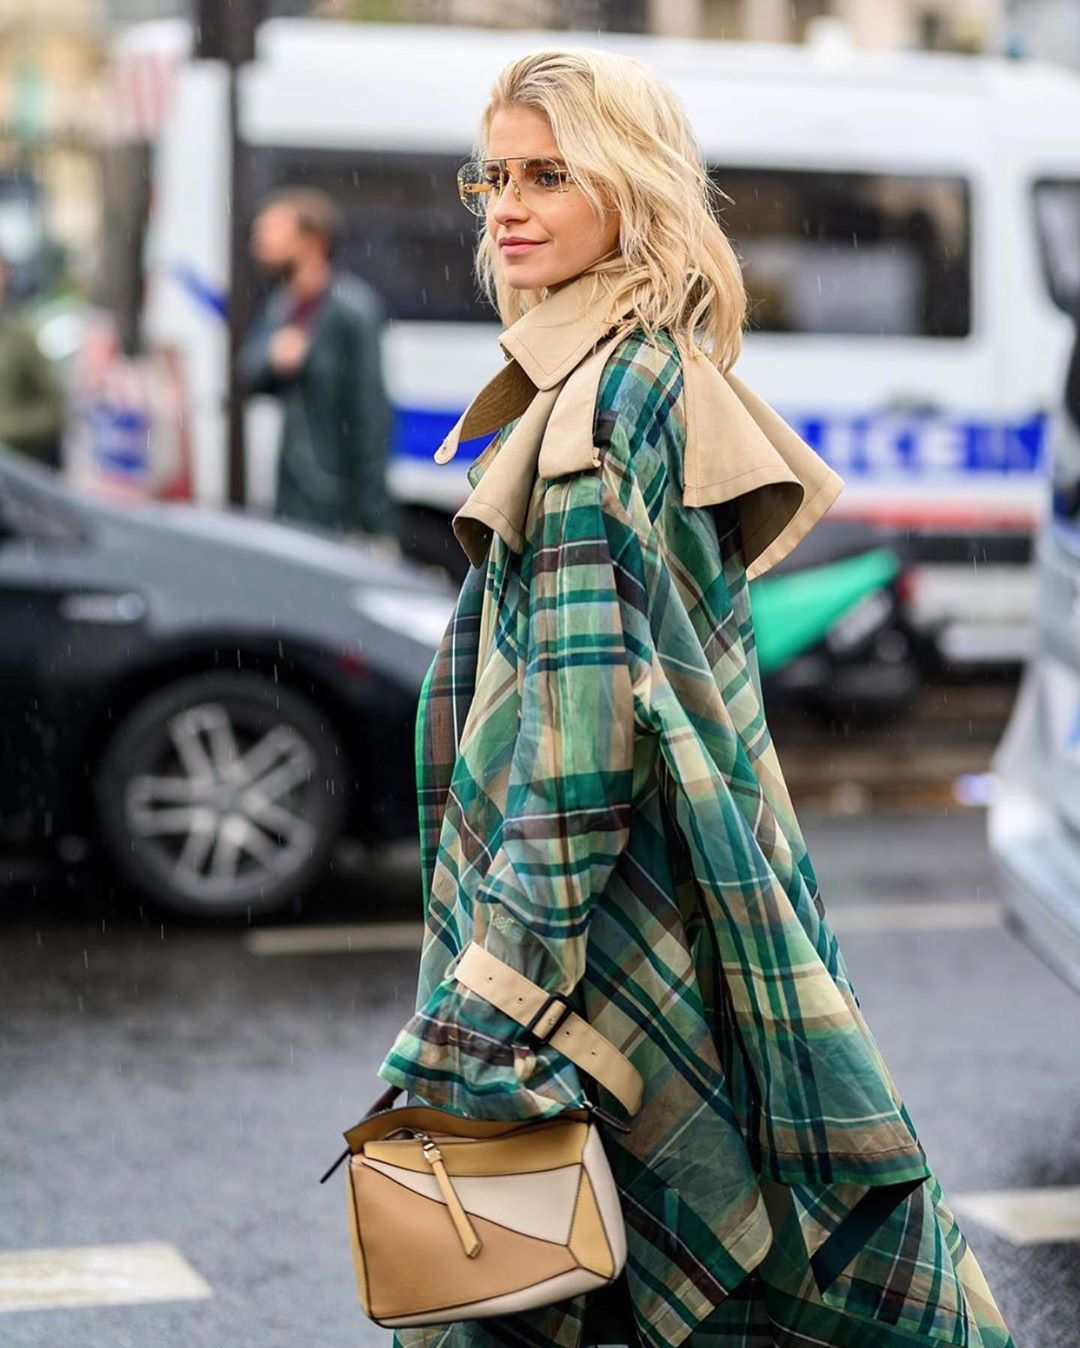 caro-daur-trench-coat-checks-london-street-style